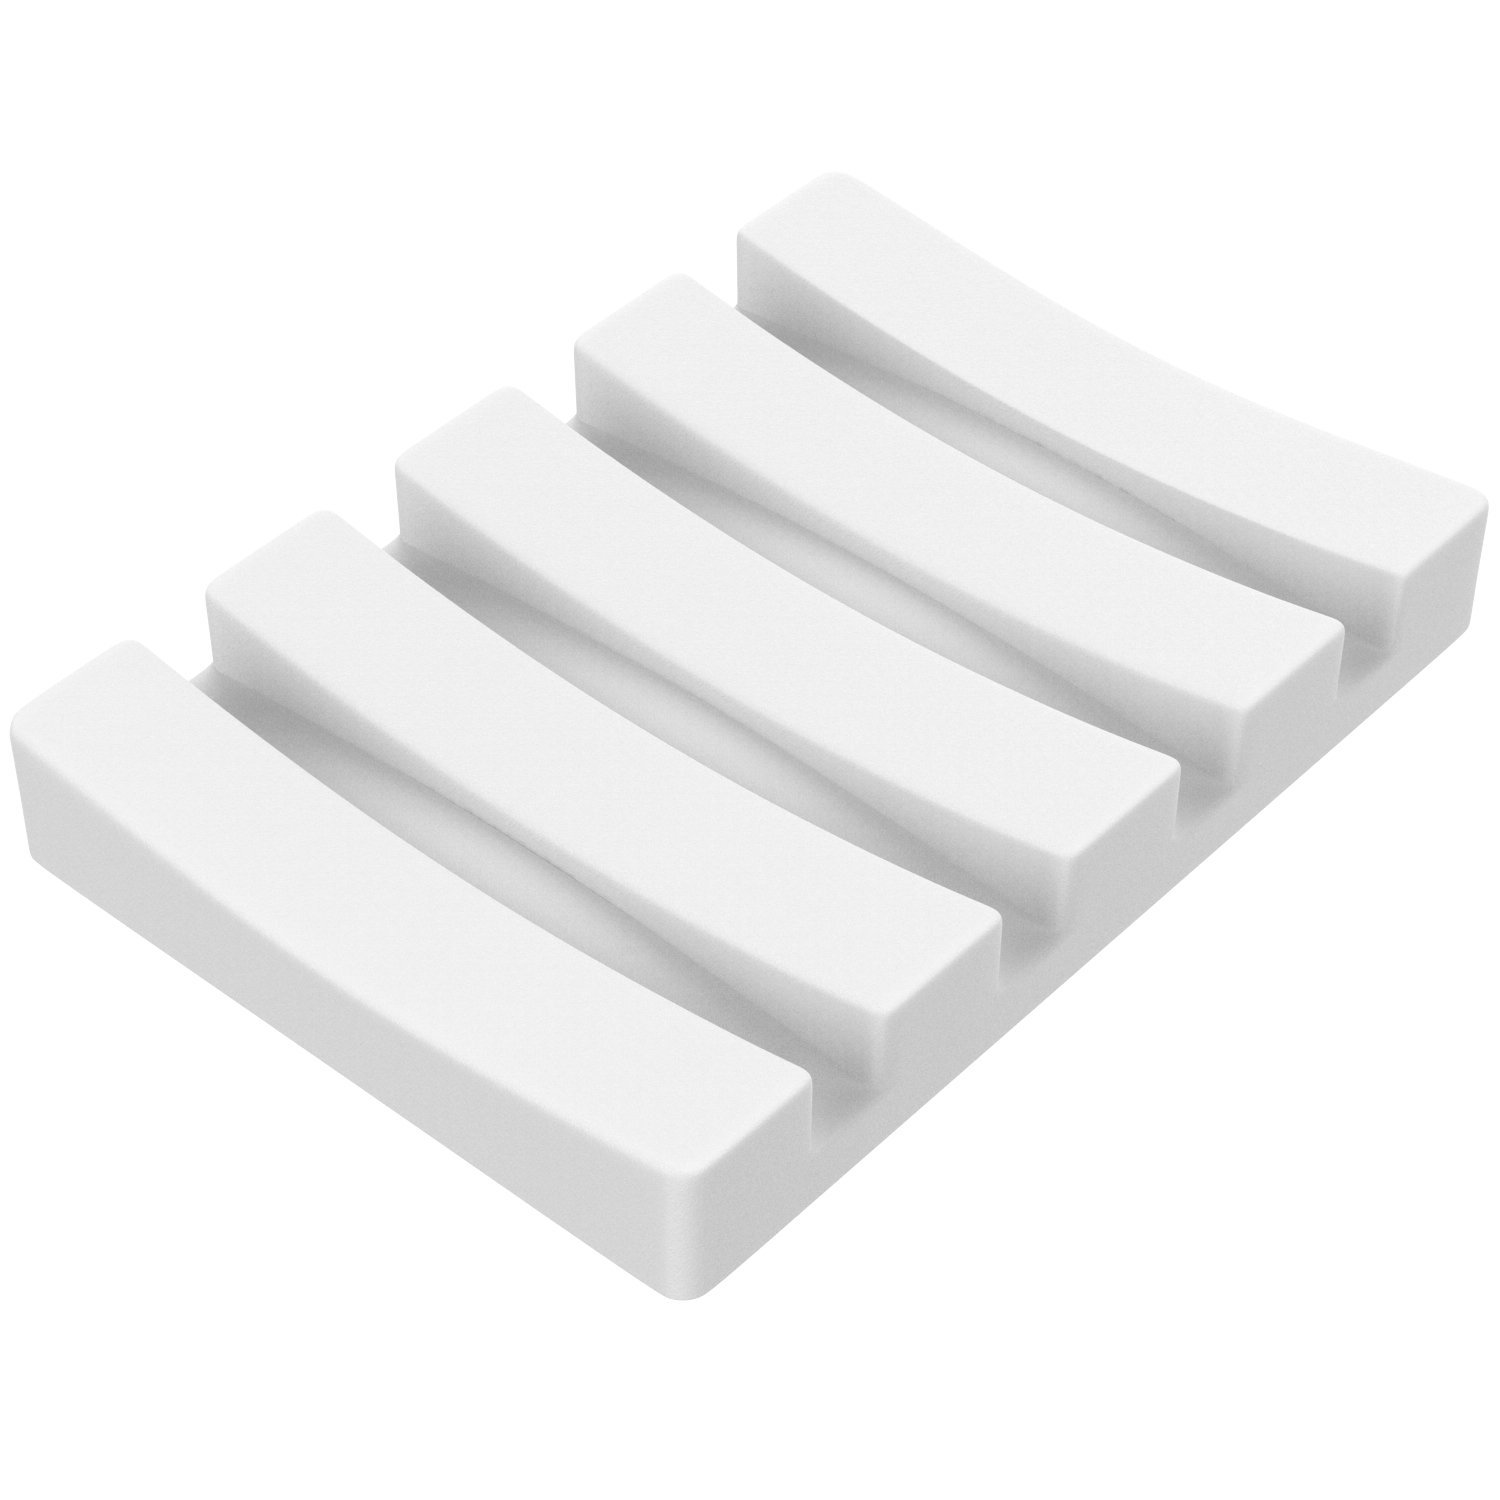 Luxspire Absorbent Soap Bar Holder, Anti-bacterial Soap Saver Dish and Square Coasters, Diatomite Coaster Fast Drying Water Absorptions Non-Slip Set, White